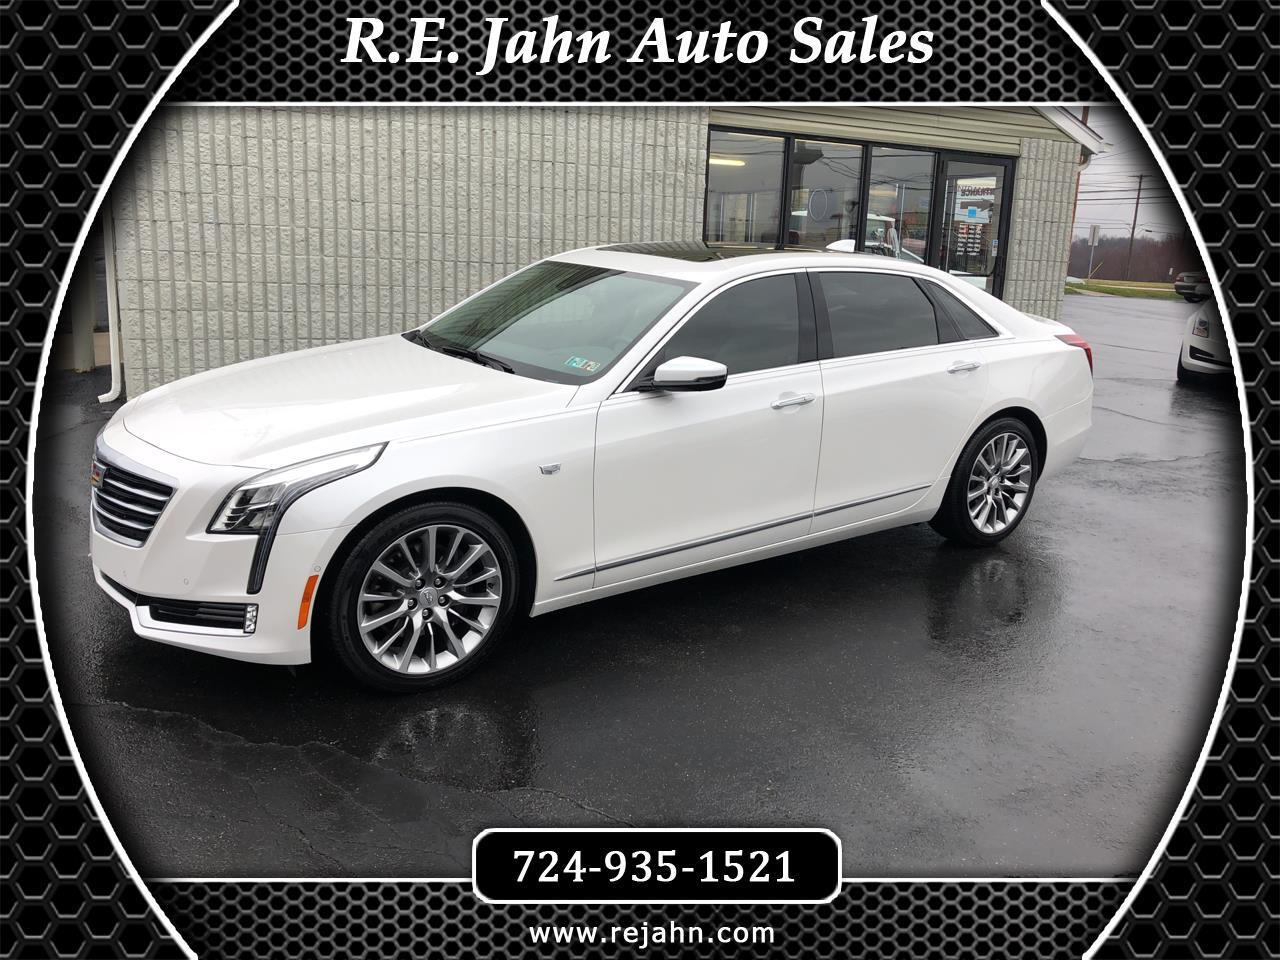 2018 Cadillac CT6 4dr Sdn 3.6L Luxury AWD